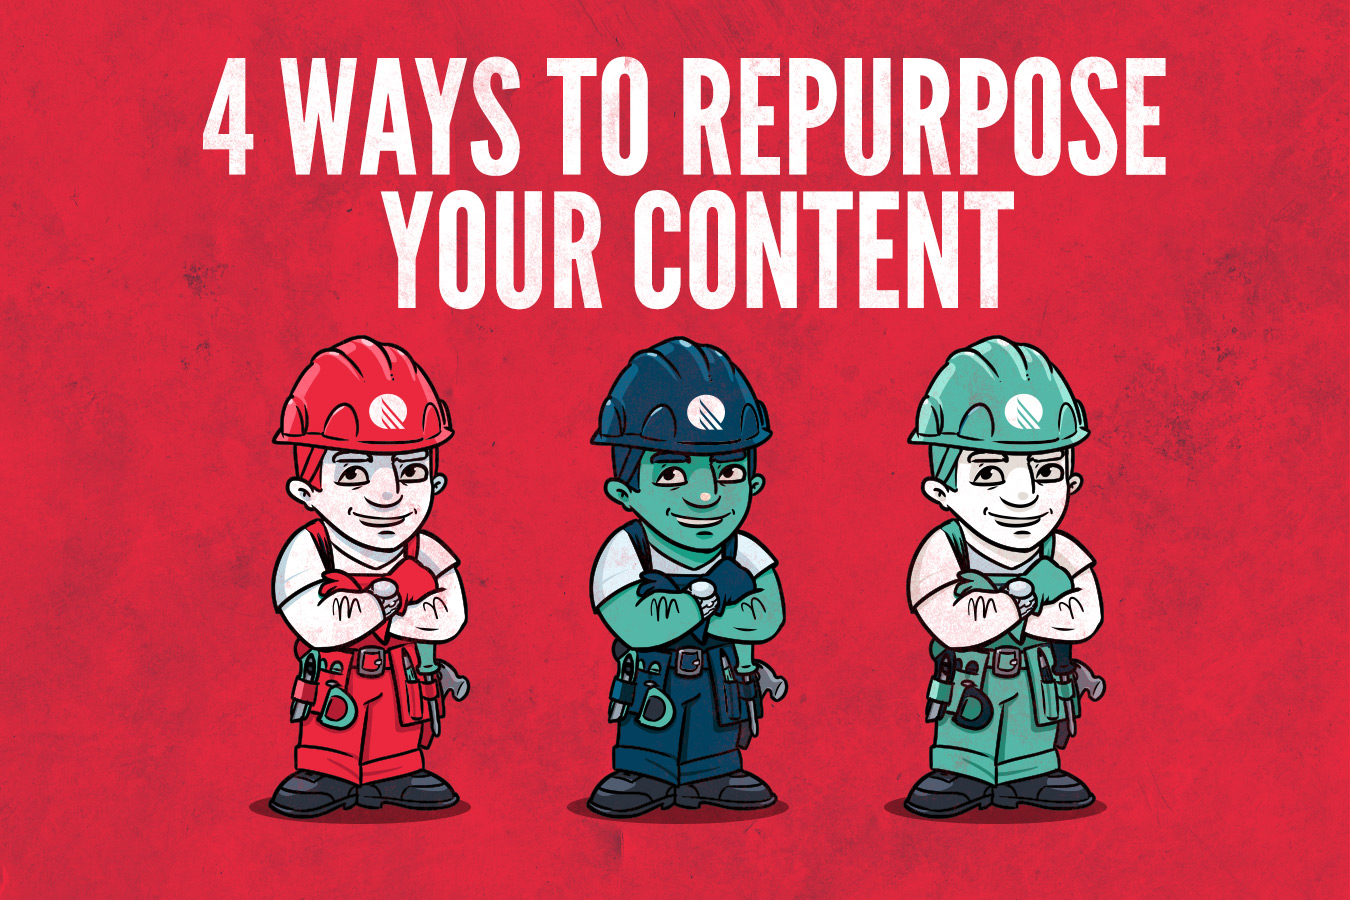 4 Amazing Ways to Repurpose Your Content [Tips]